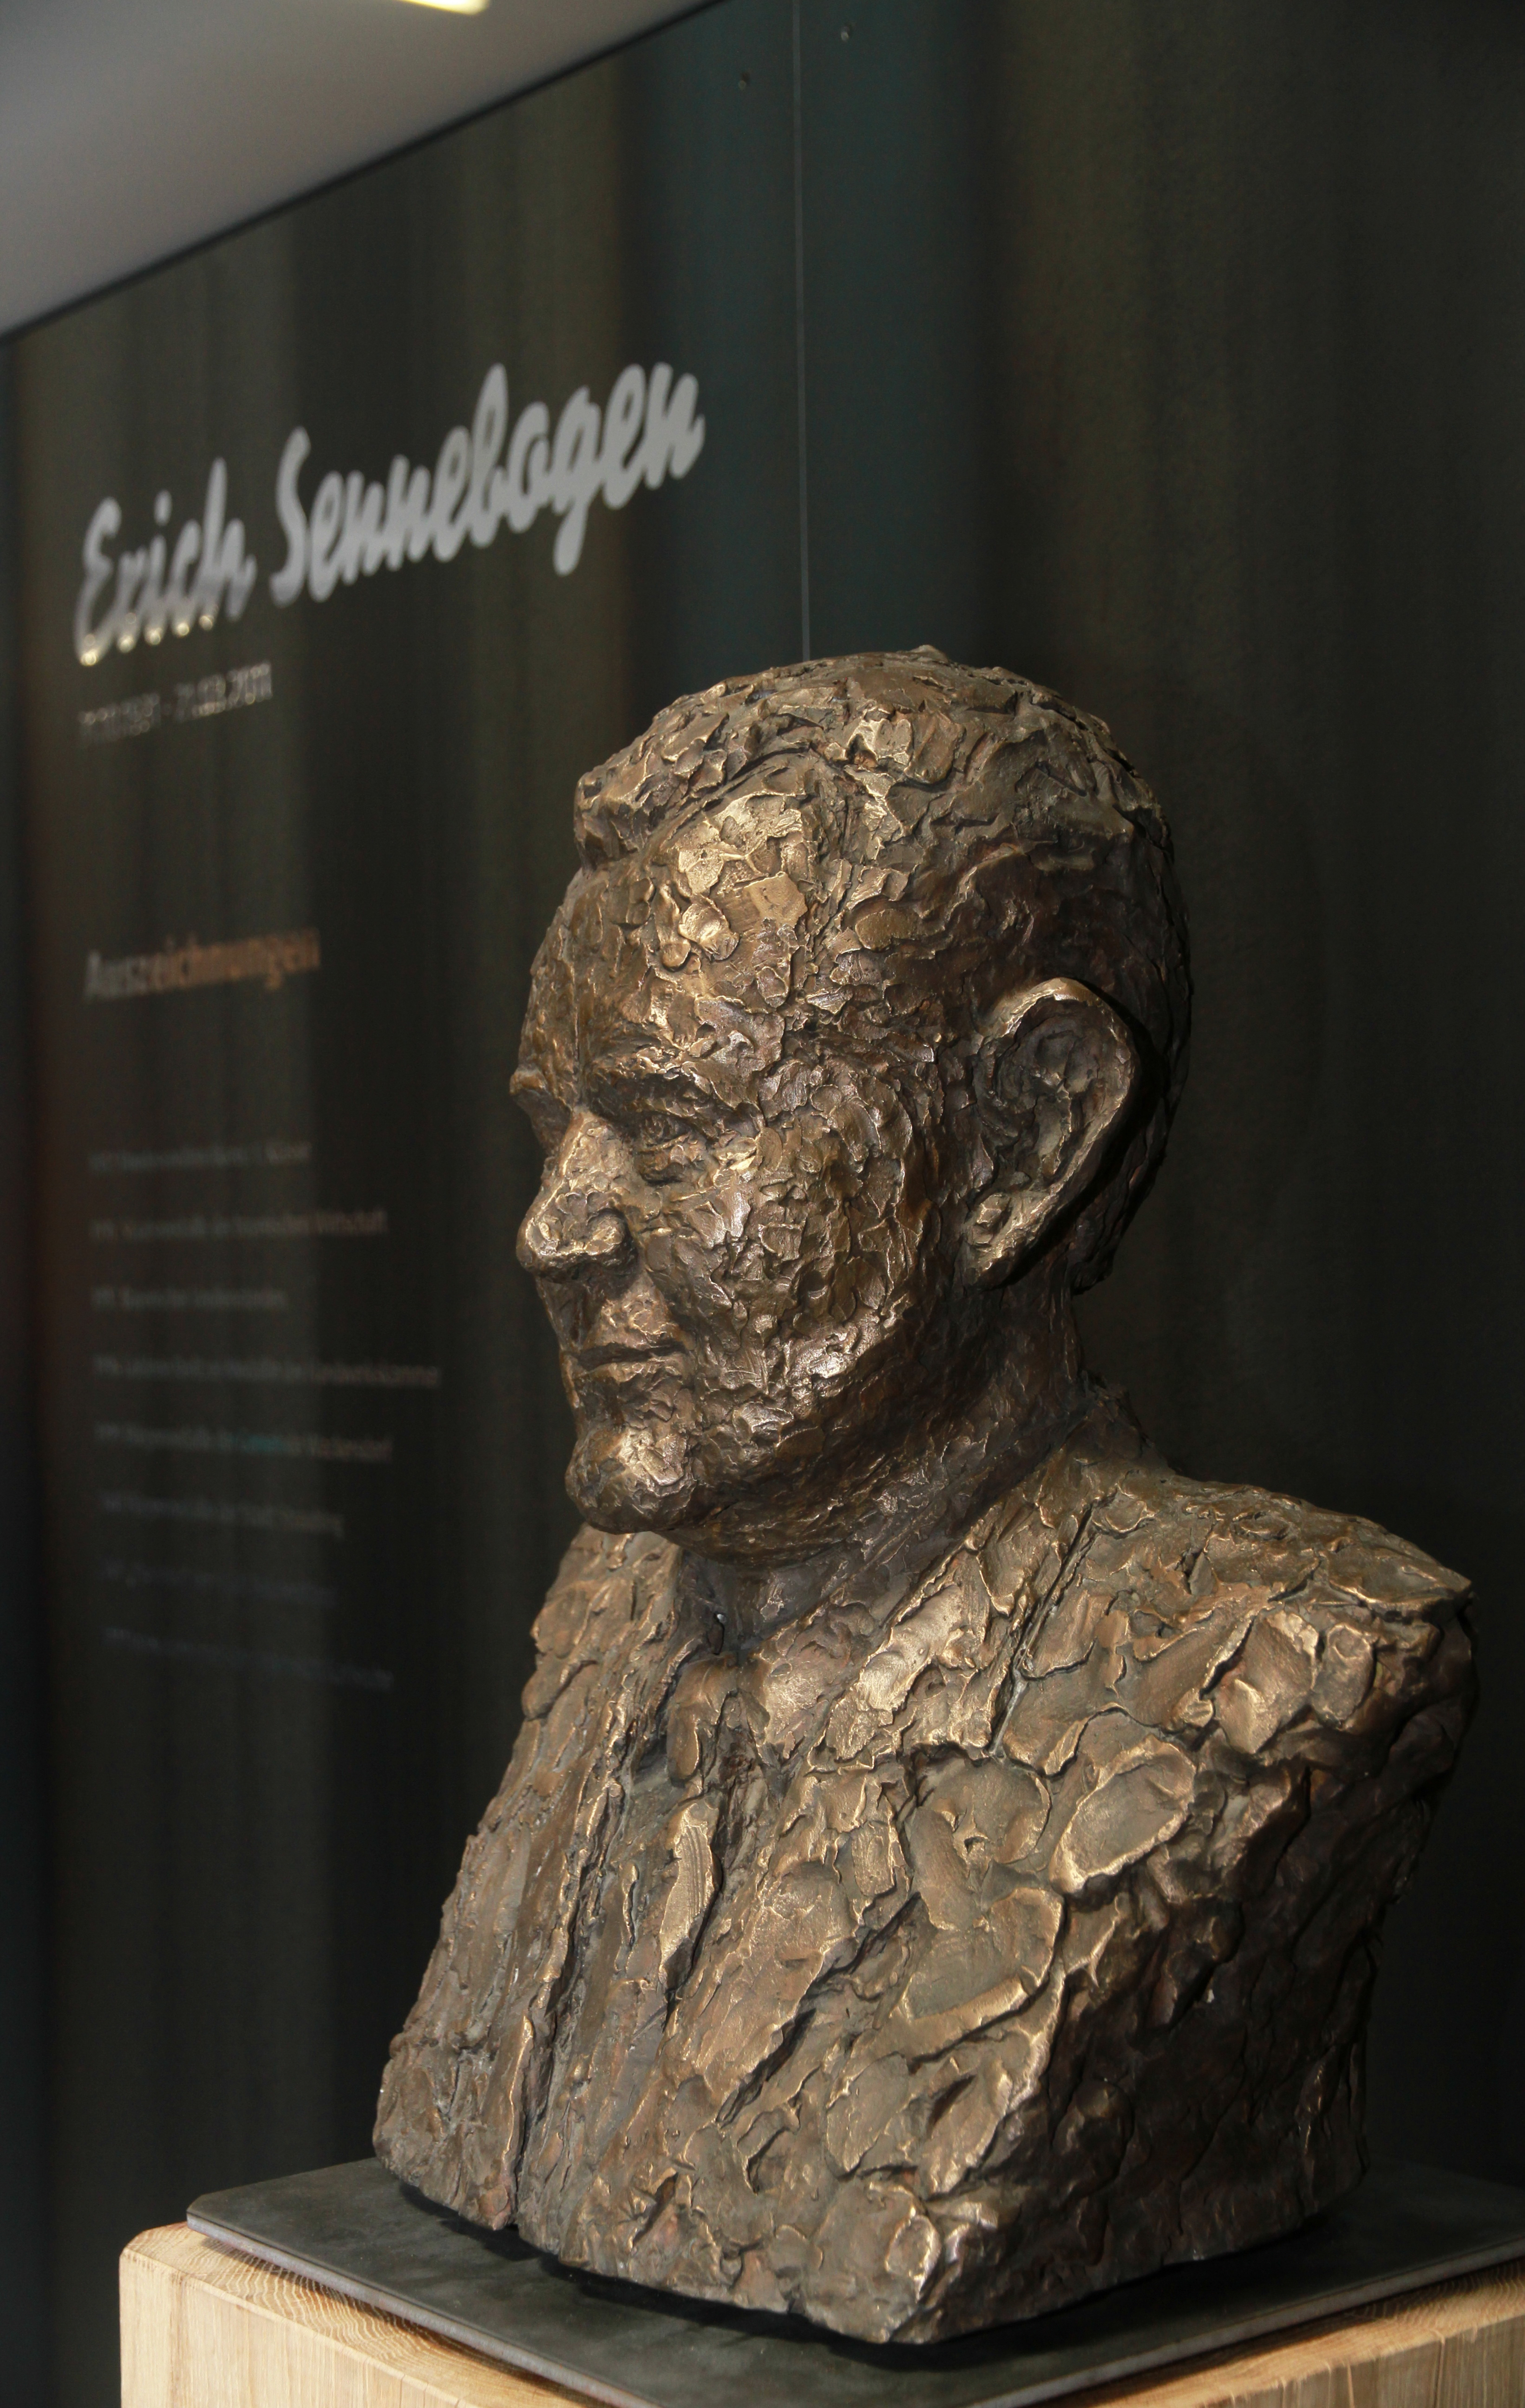 A bust of Erich Sennebogen, the Company's founder, welcomes people arriving at the Museum.